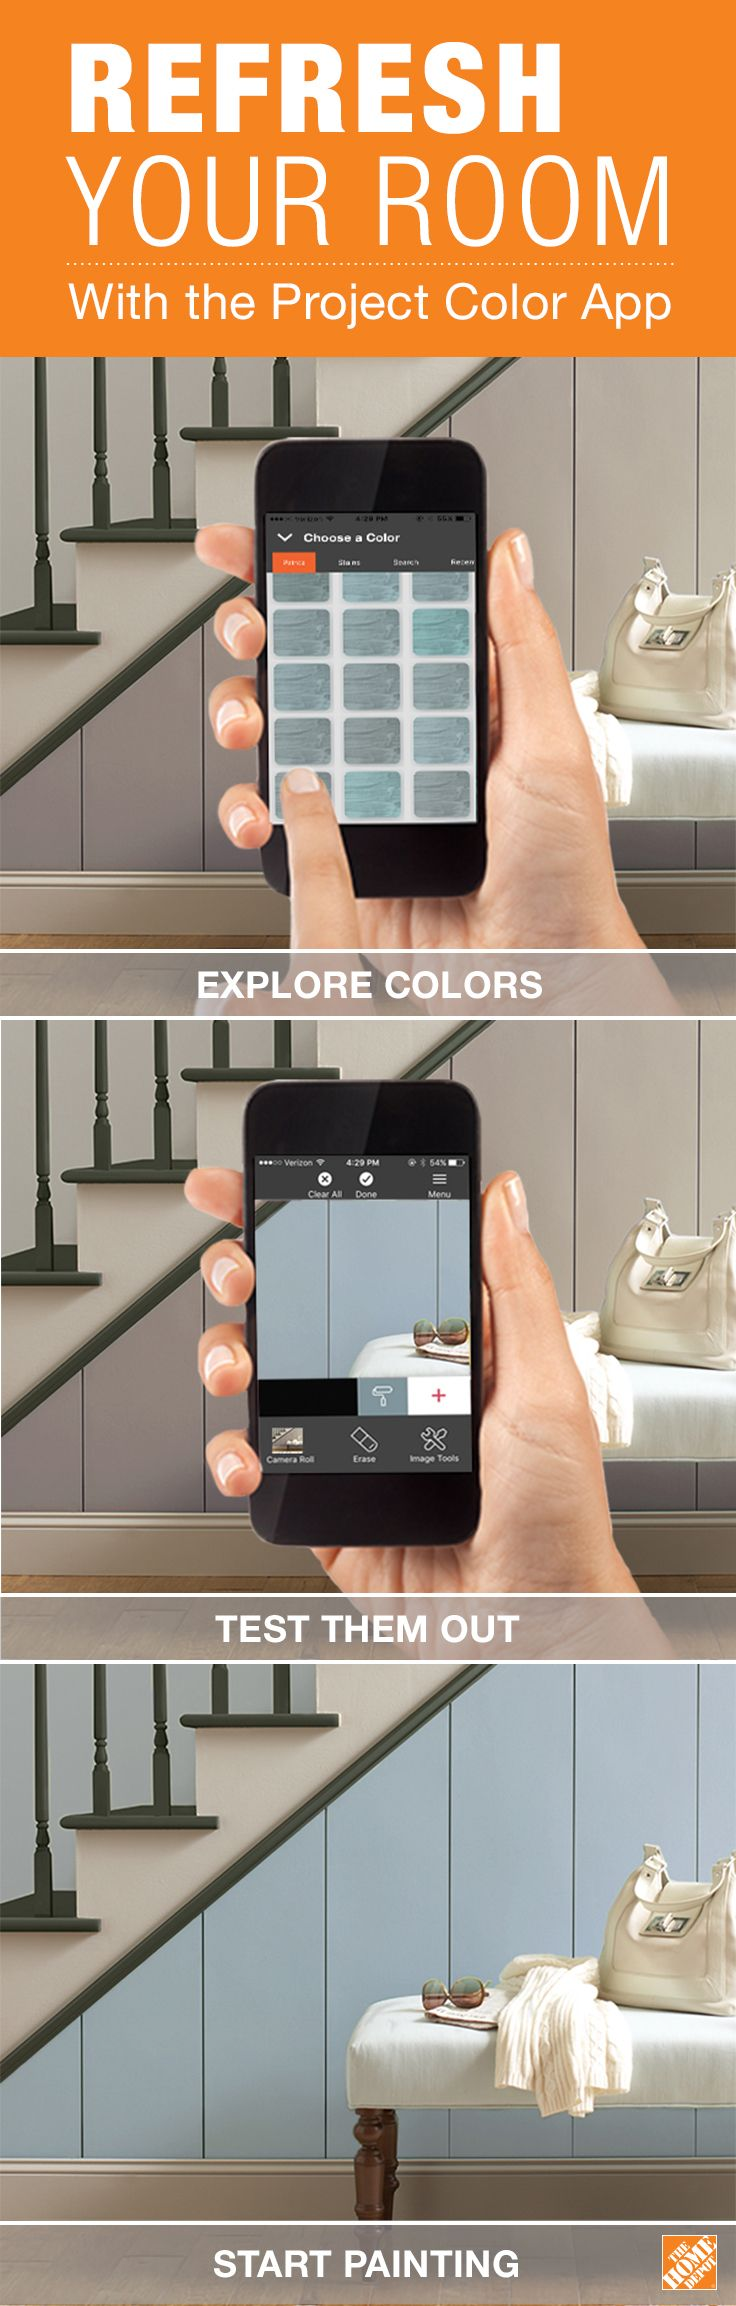 "Search ""Project Color by The Home Depot"" on your iPhone or Android to download the app today! The Project Color app by The Home Depot allows you to try out paint colors virtually. When you're thinking about redecorating a room or refreshing your walls, consult the app to test out your new color choices, like BEHR's Journey's End pictured here. Download the app, and start trying out new paint colors now."